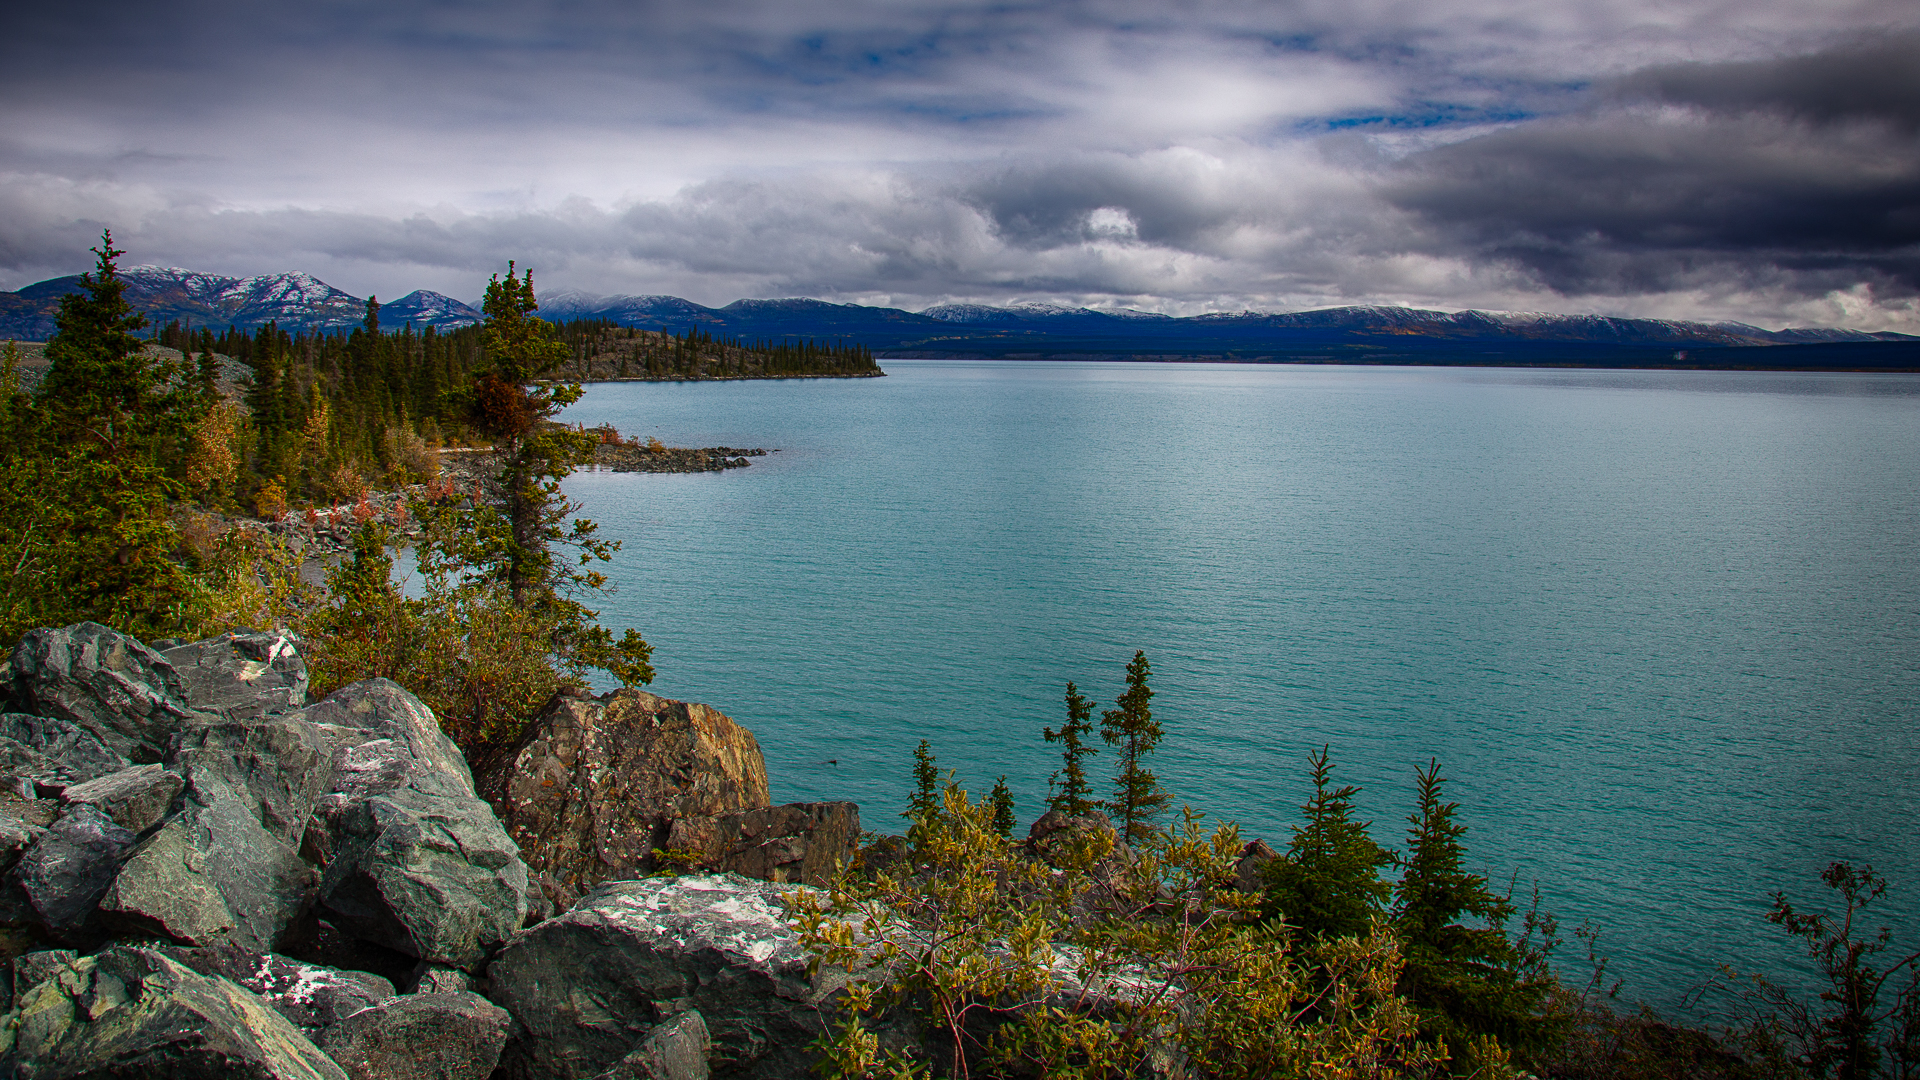 The view out over Kluane Lake